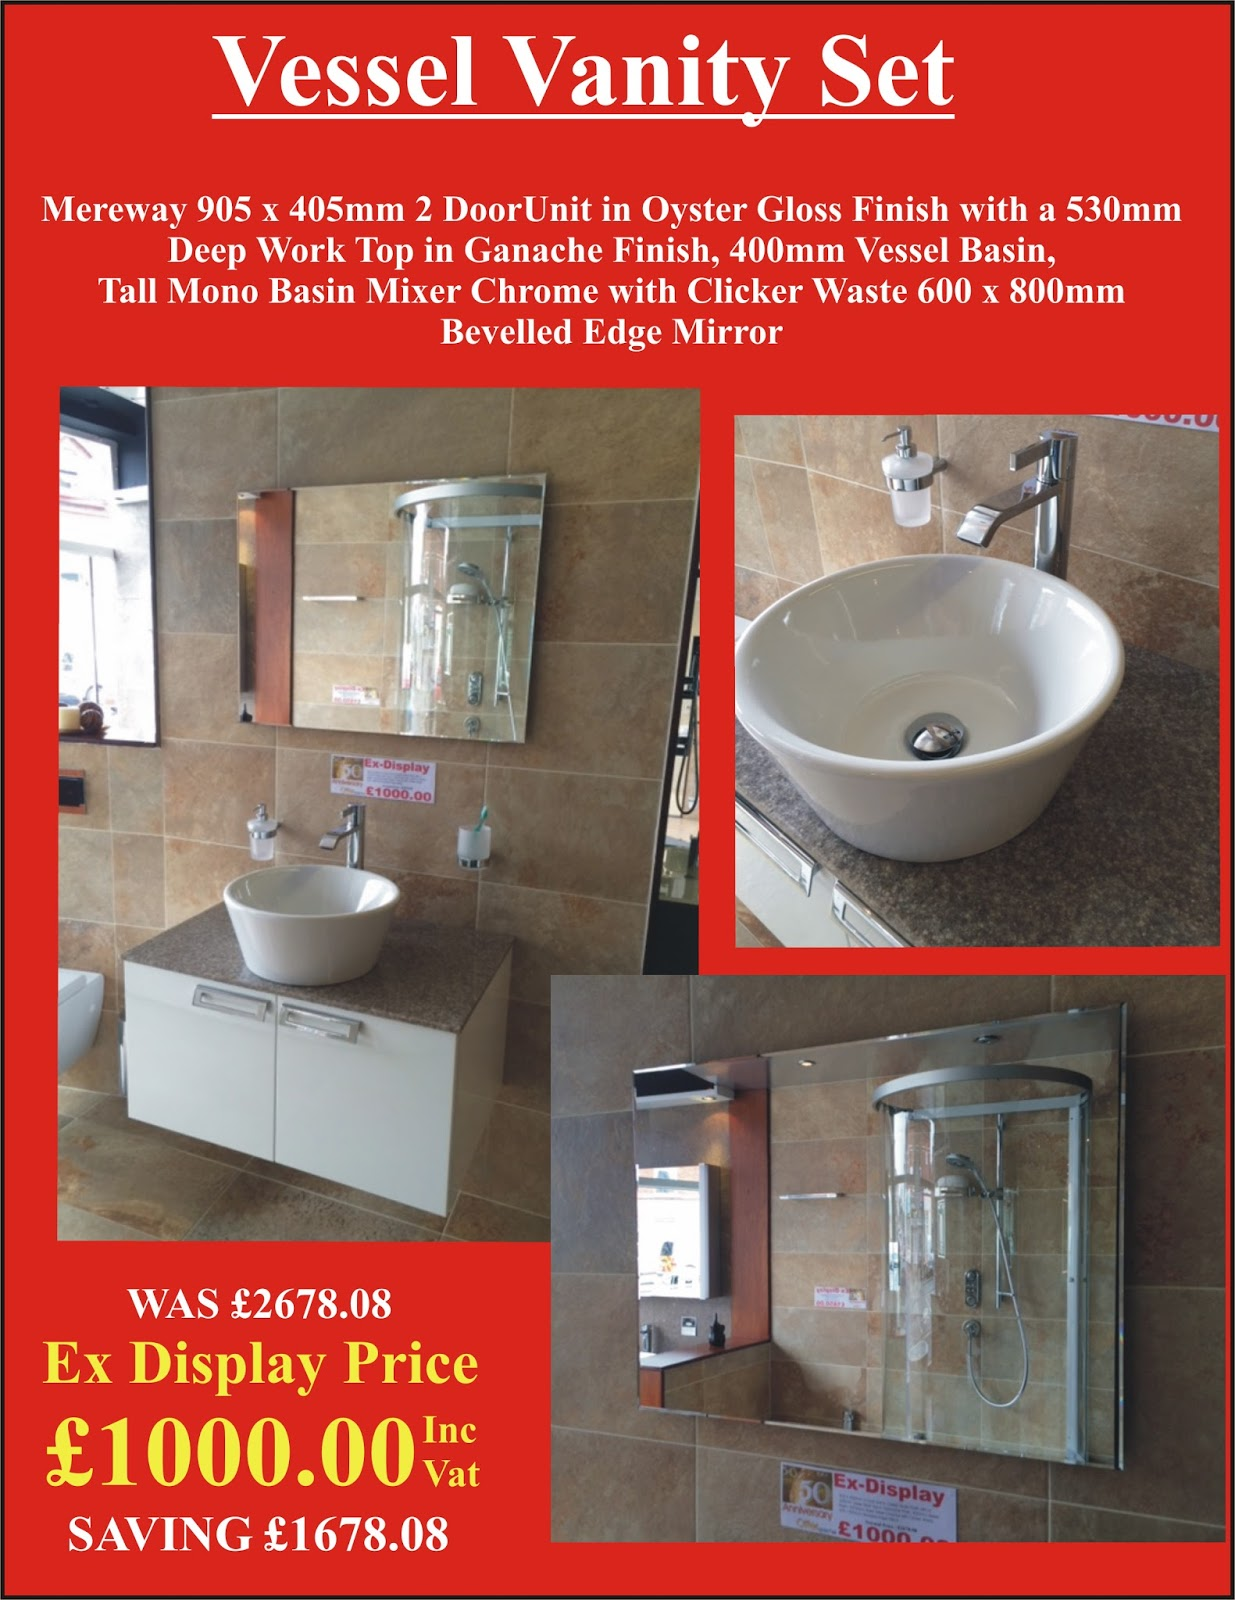 Ex display bathrooms at harry bates vessel vanity set for Bathroom vanity display for sale